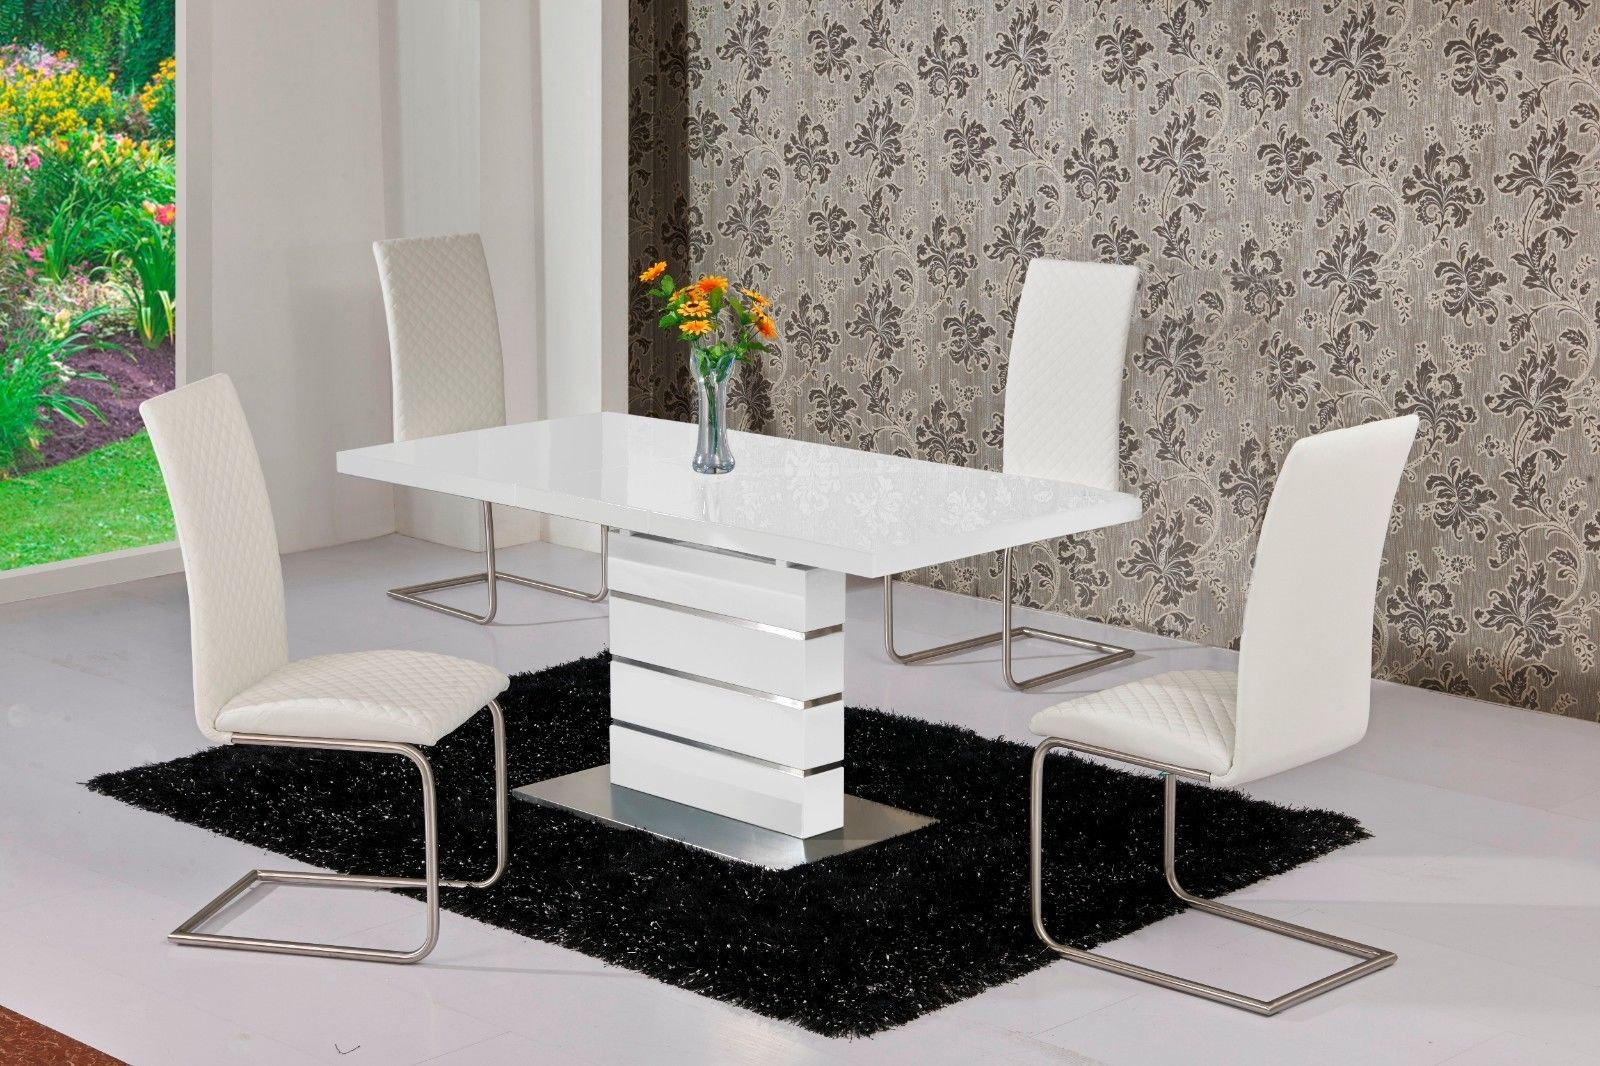 Table With Chairs Mace High Gloss Extending 120 160 Dining Table Chair Set White